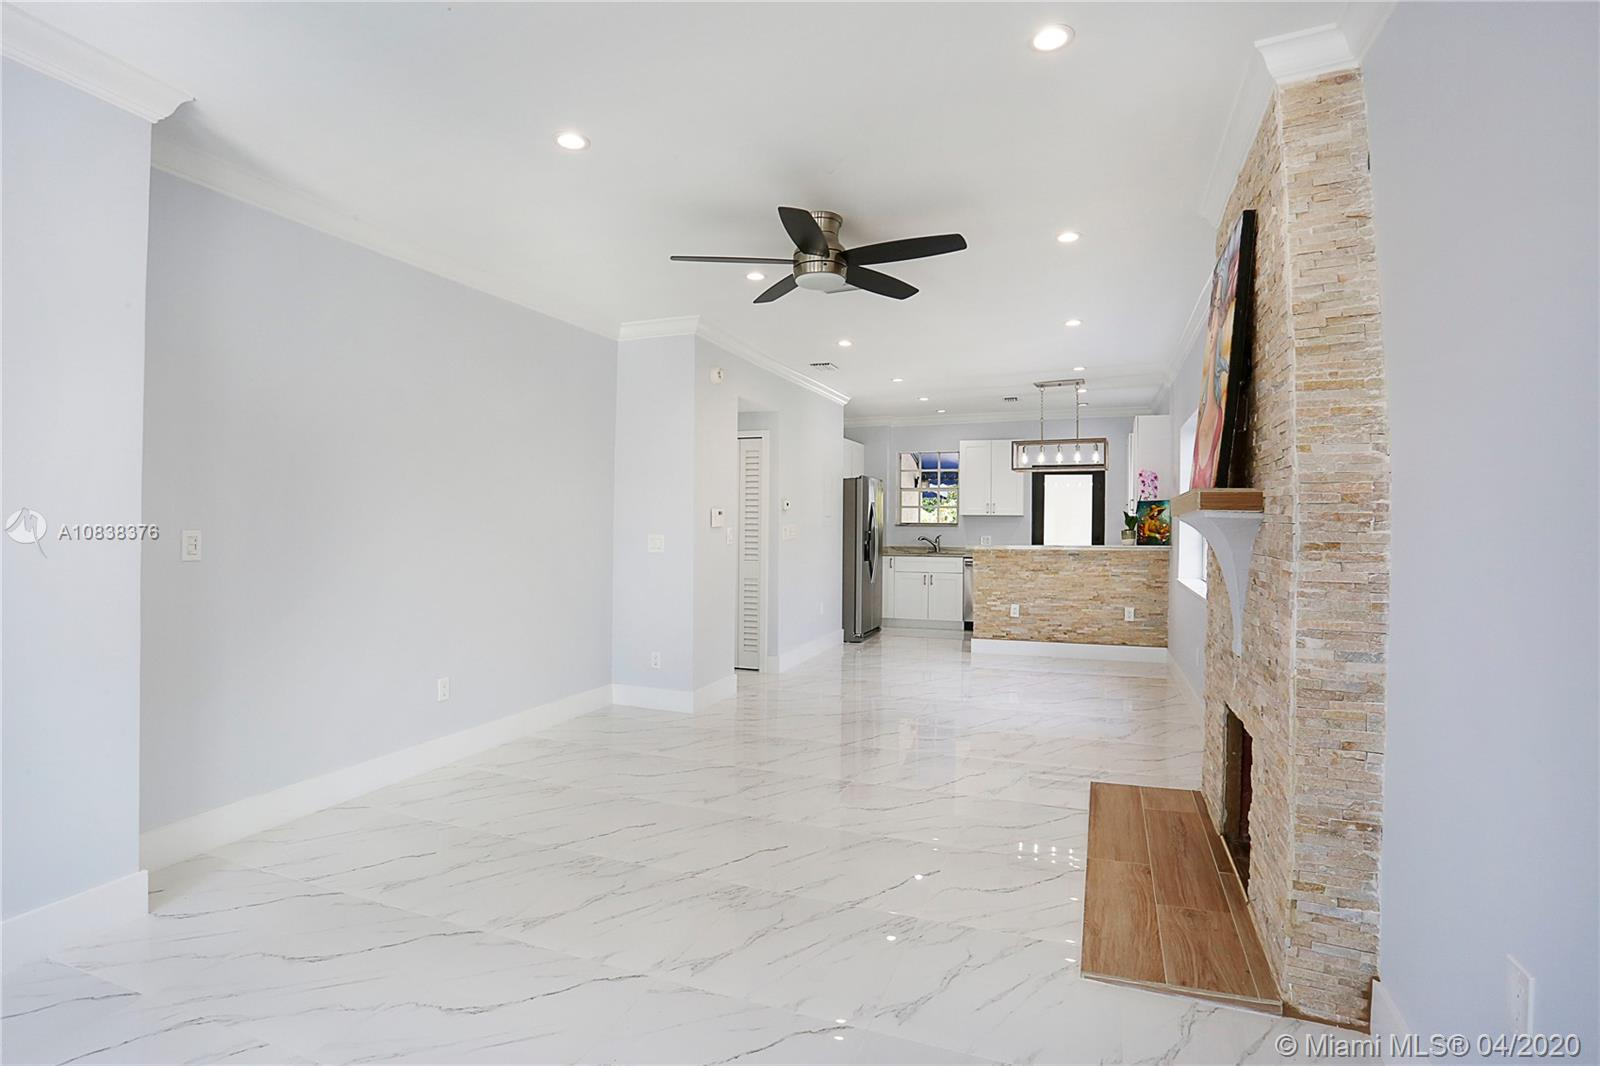 820 Wallace St, Coral Gables, Florida 33134, 2 Bedrooms Bedrooms, ,1 BathroomBathrooms,Residential,For Sale,820 Wallace St,A10838376